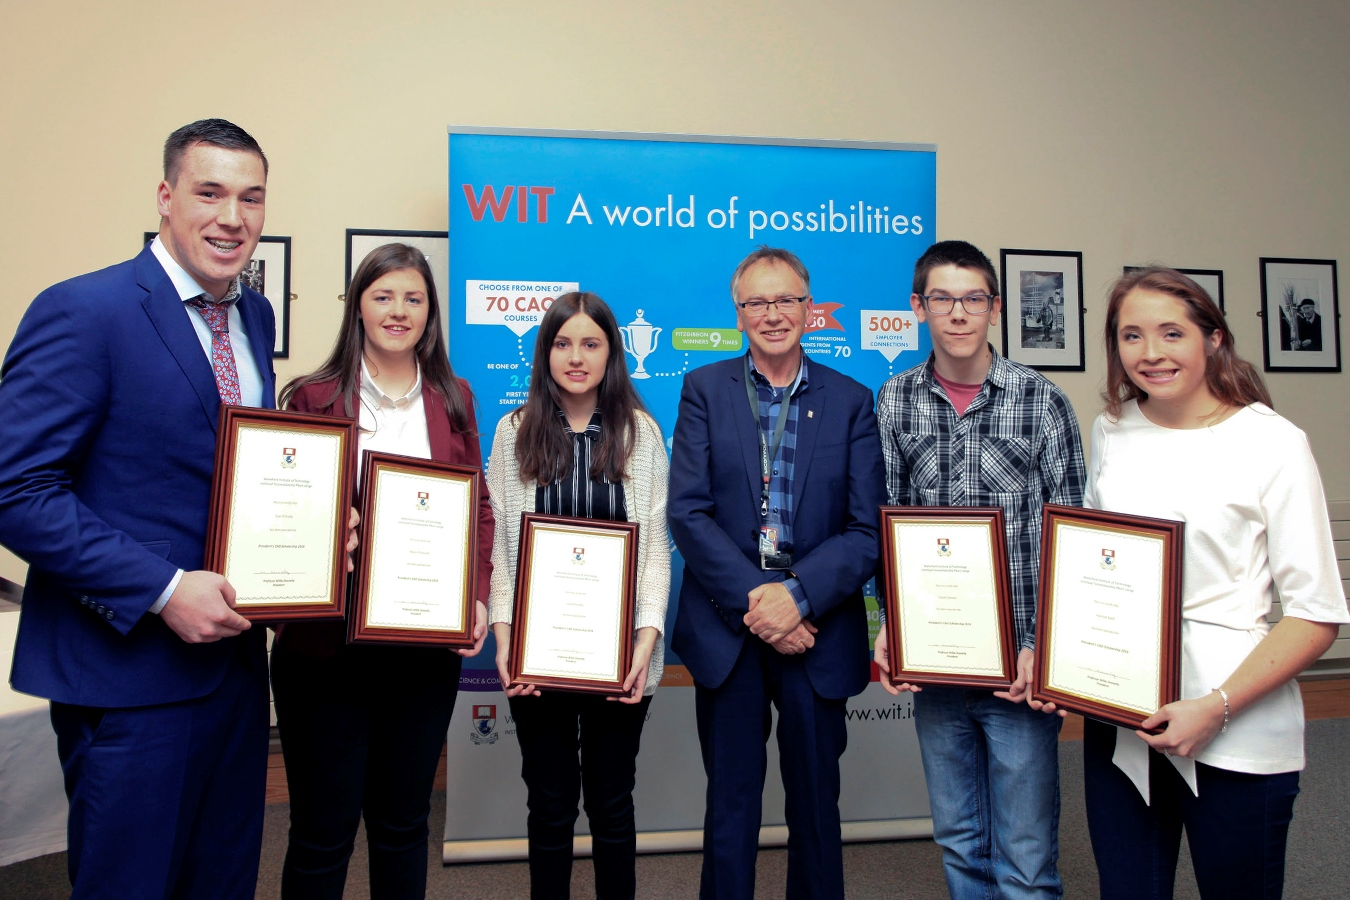 Pictured in 2017, the first cohort of scholars who completed their studies in 2020: Cian O'Grady, student of the School of Humanities; Roisin O'Donnell, student of the School of Science; Louise Dunphy, student of the School of Business; Professor Willie Donnelly, President of Waterford Institute of Technology; Gareth Dineen, student of the School of Engineering; Hannah Nash, student of the School of Health Sciences.